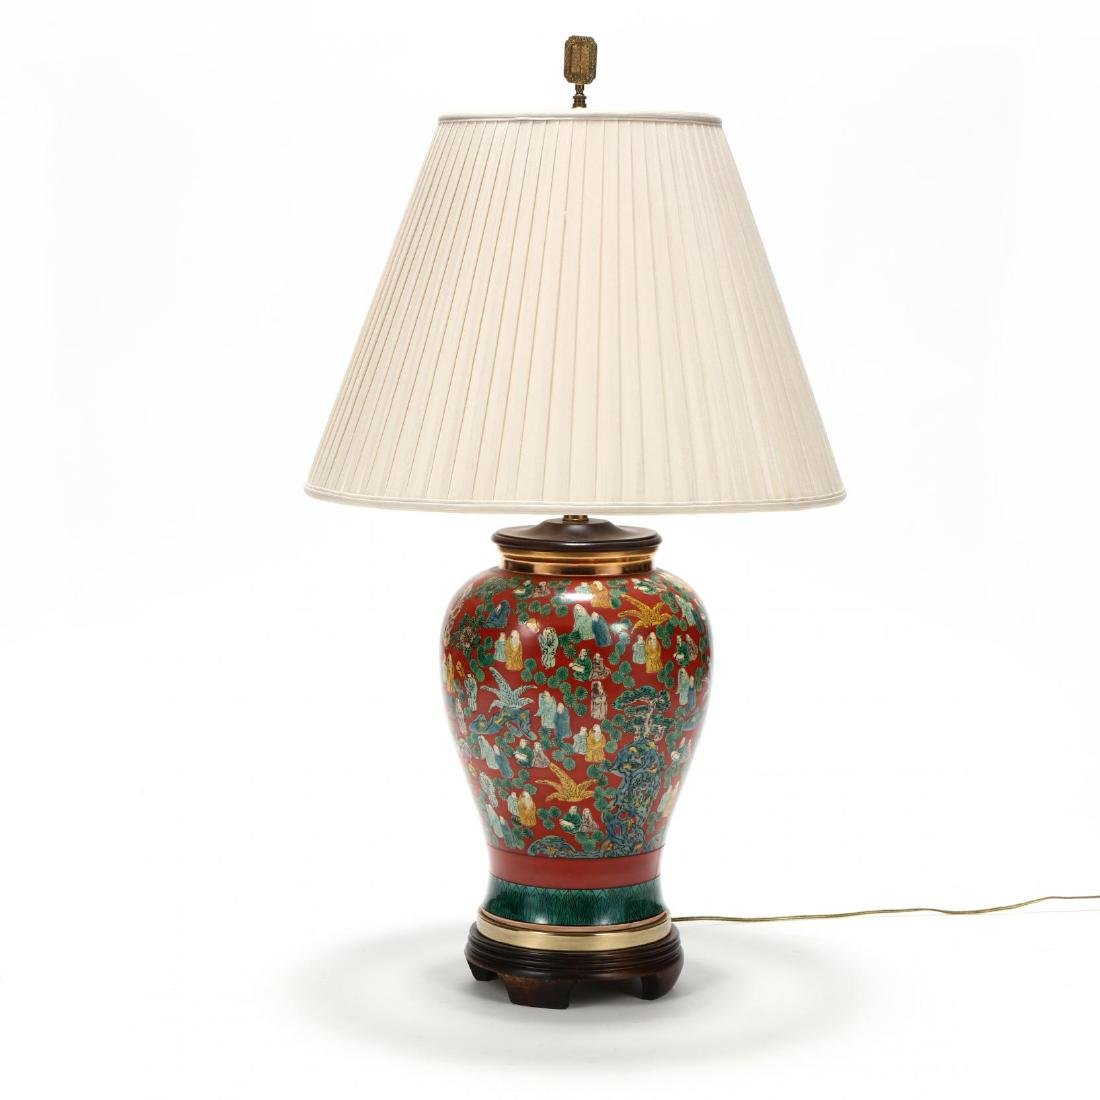 Chinese Export Style Large Table Lamp